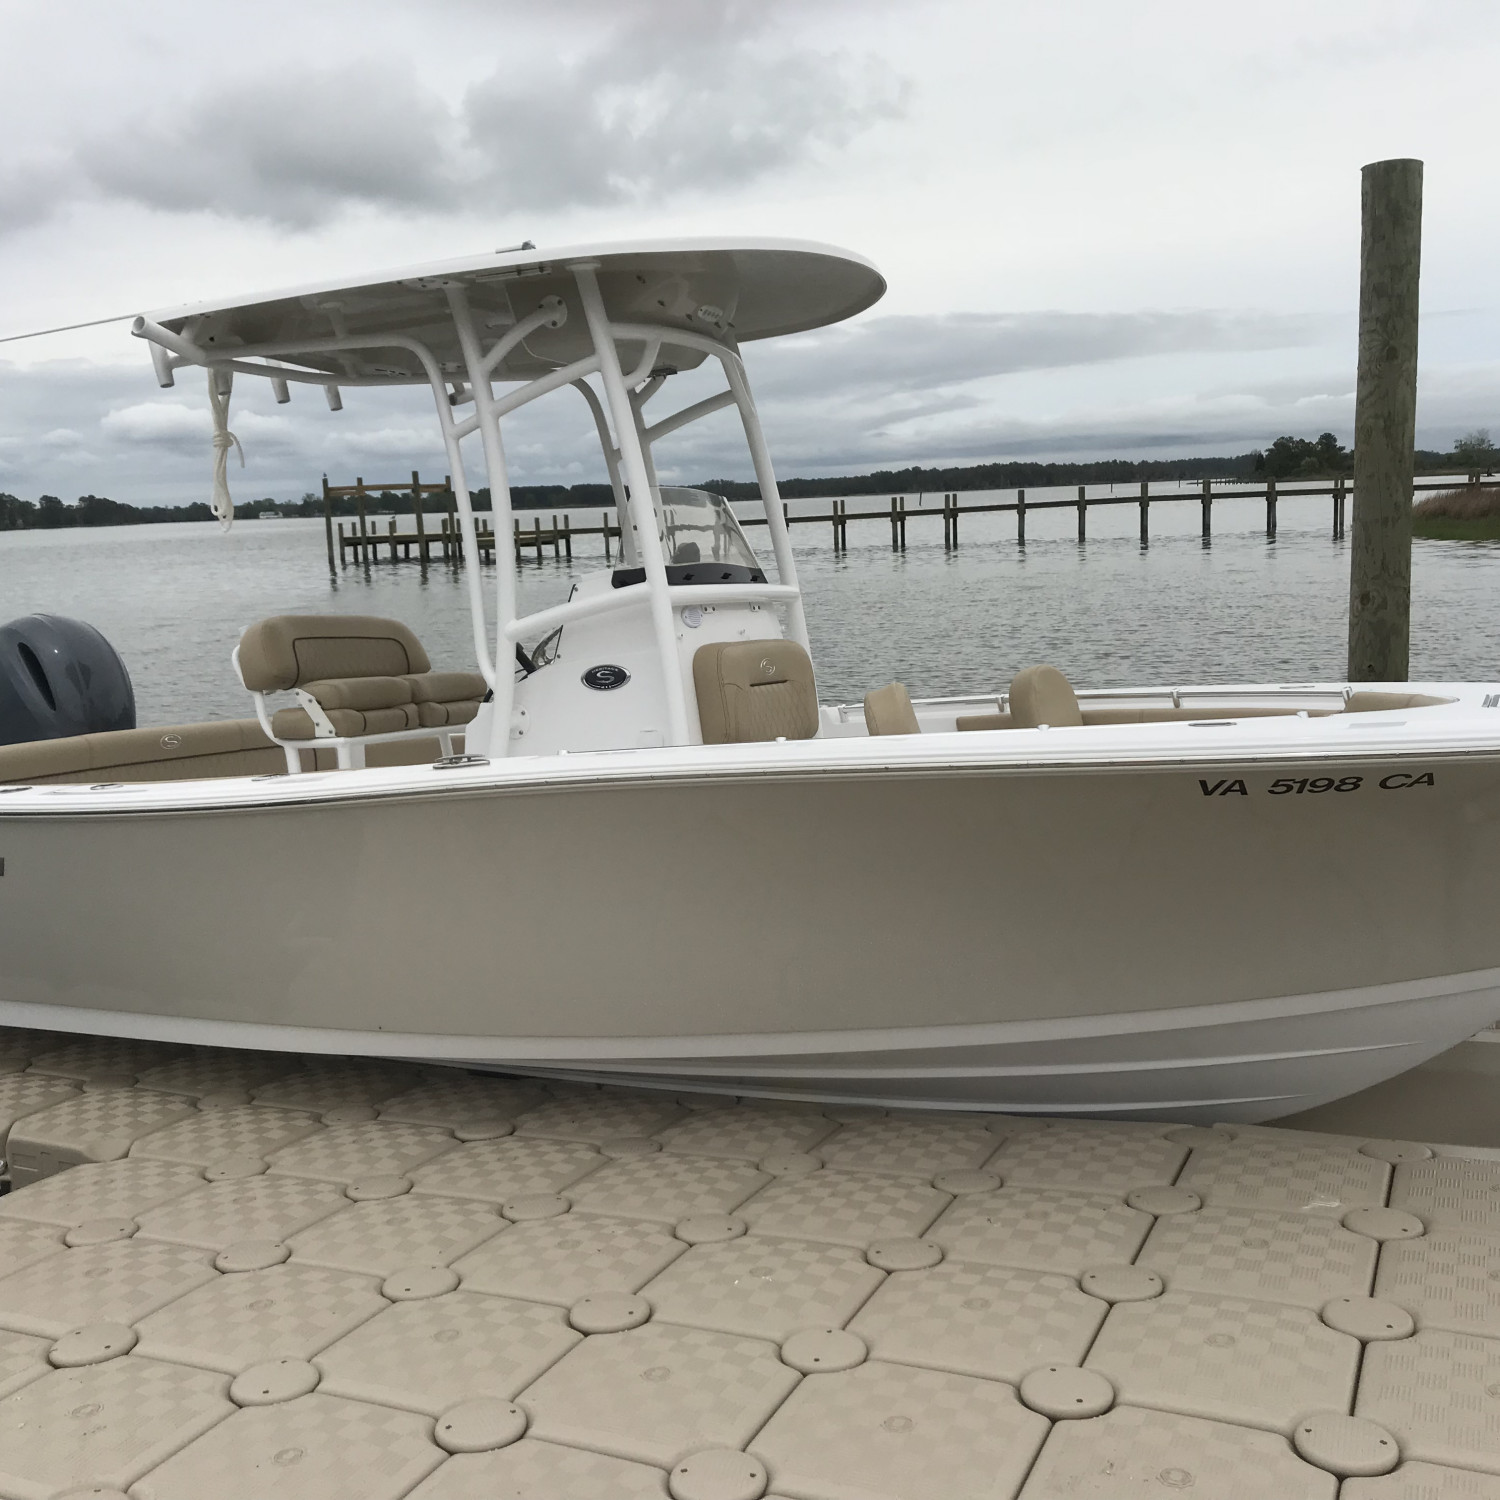 Title: New toy docked - On board their Sportsman Heritage 211 Center Console - Location: Gloucester, va. Participating in the Photo Contest #SportsmanMay2018